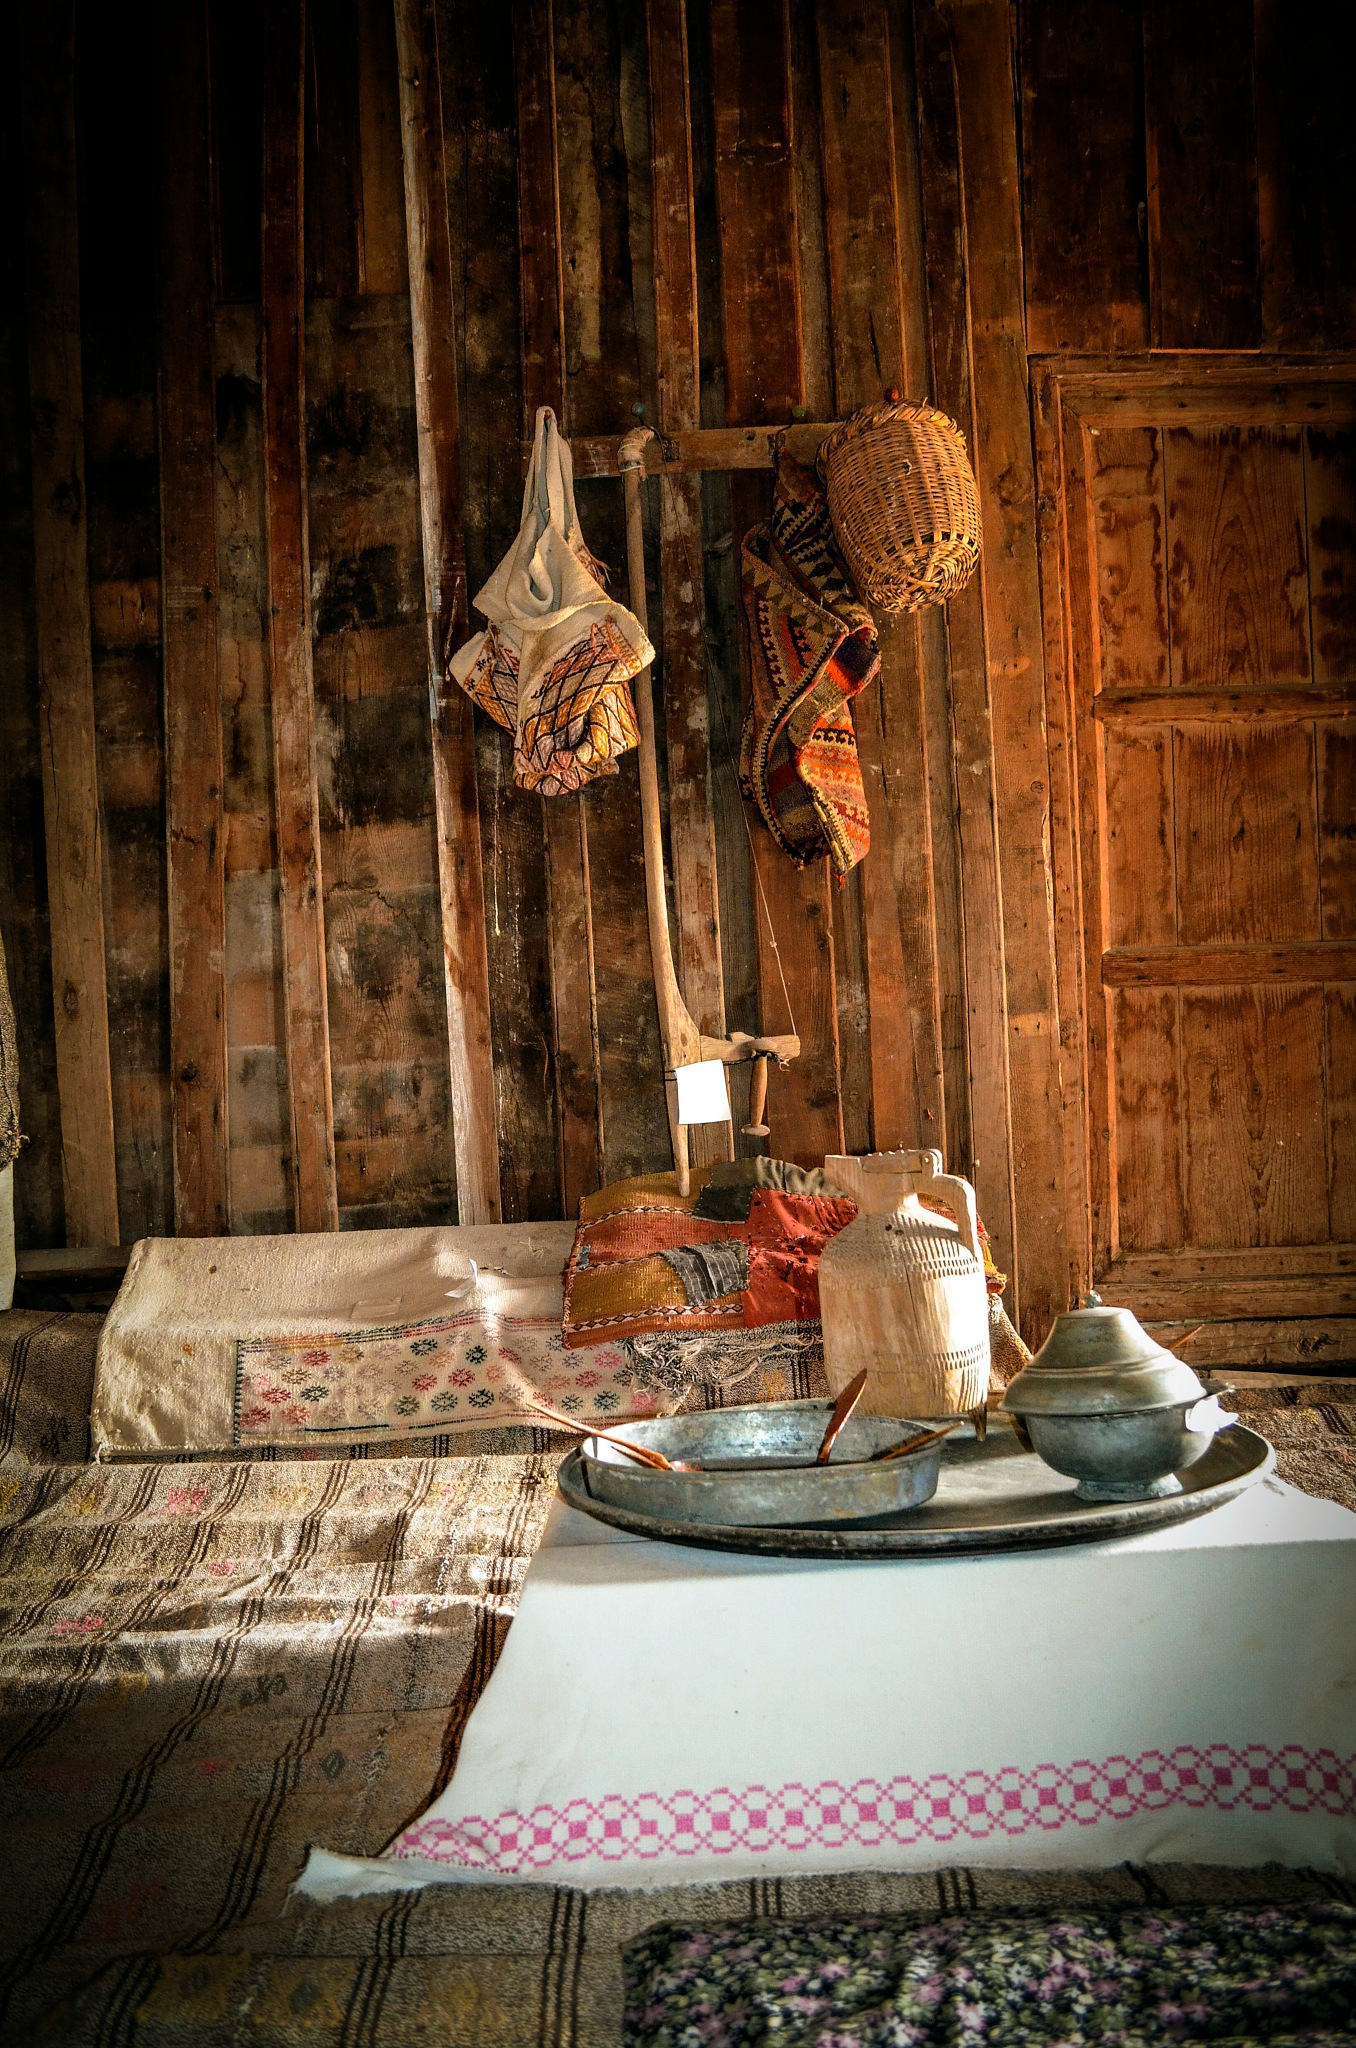 some items from an old village house by Emel Seckin